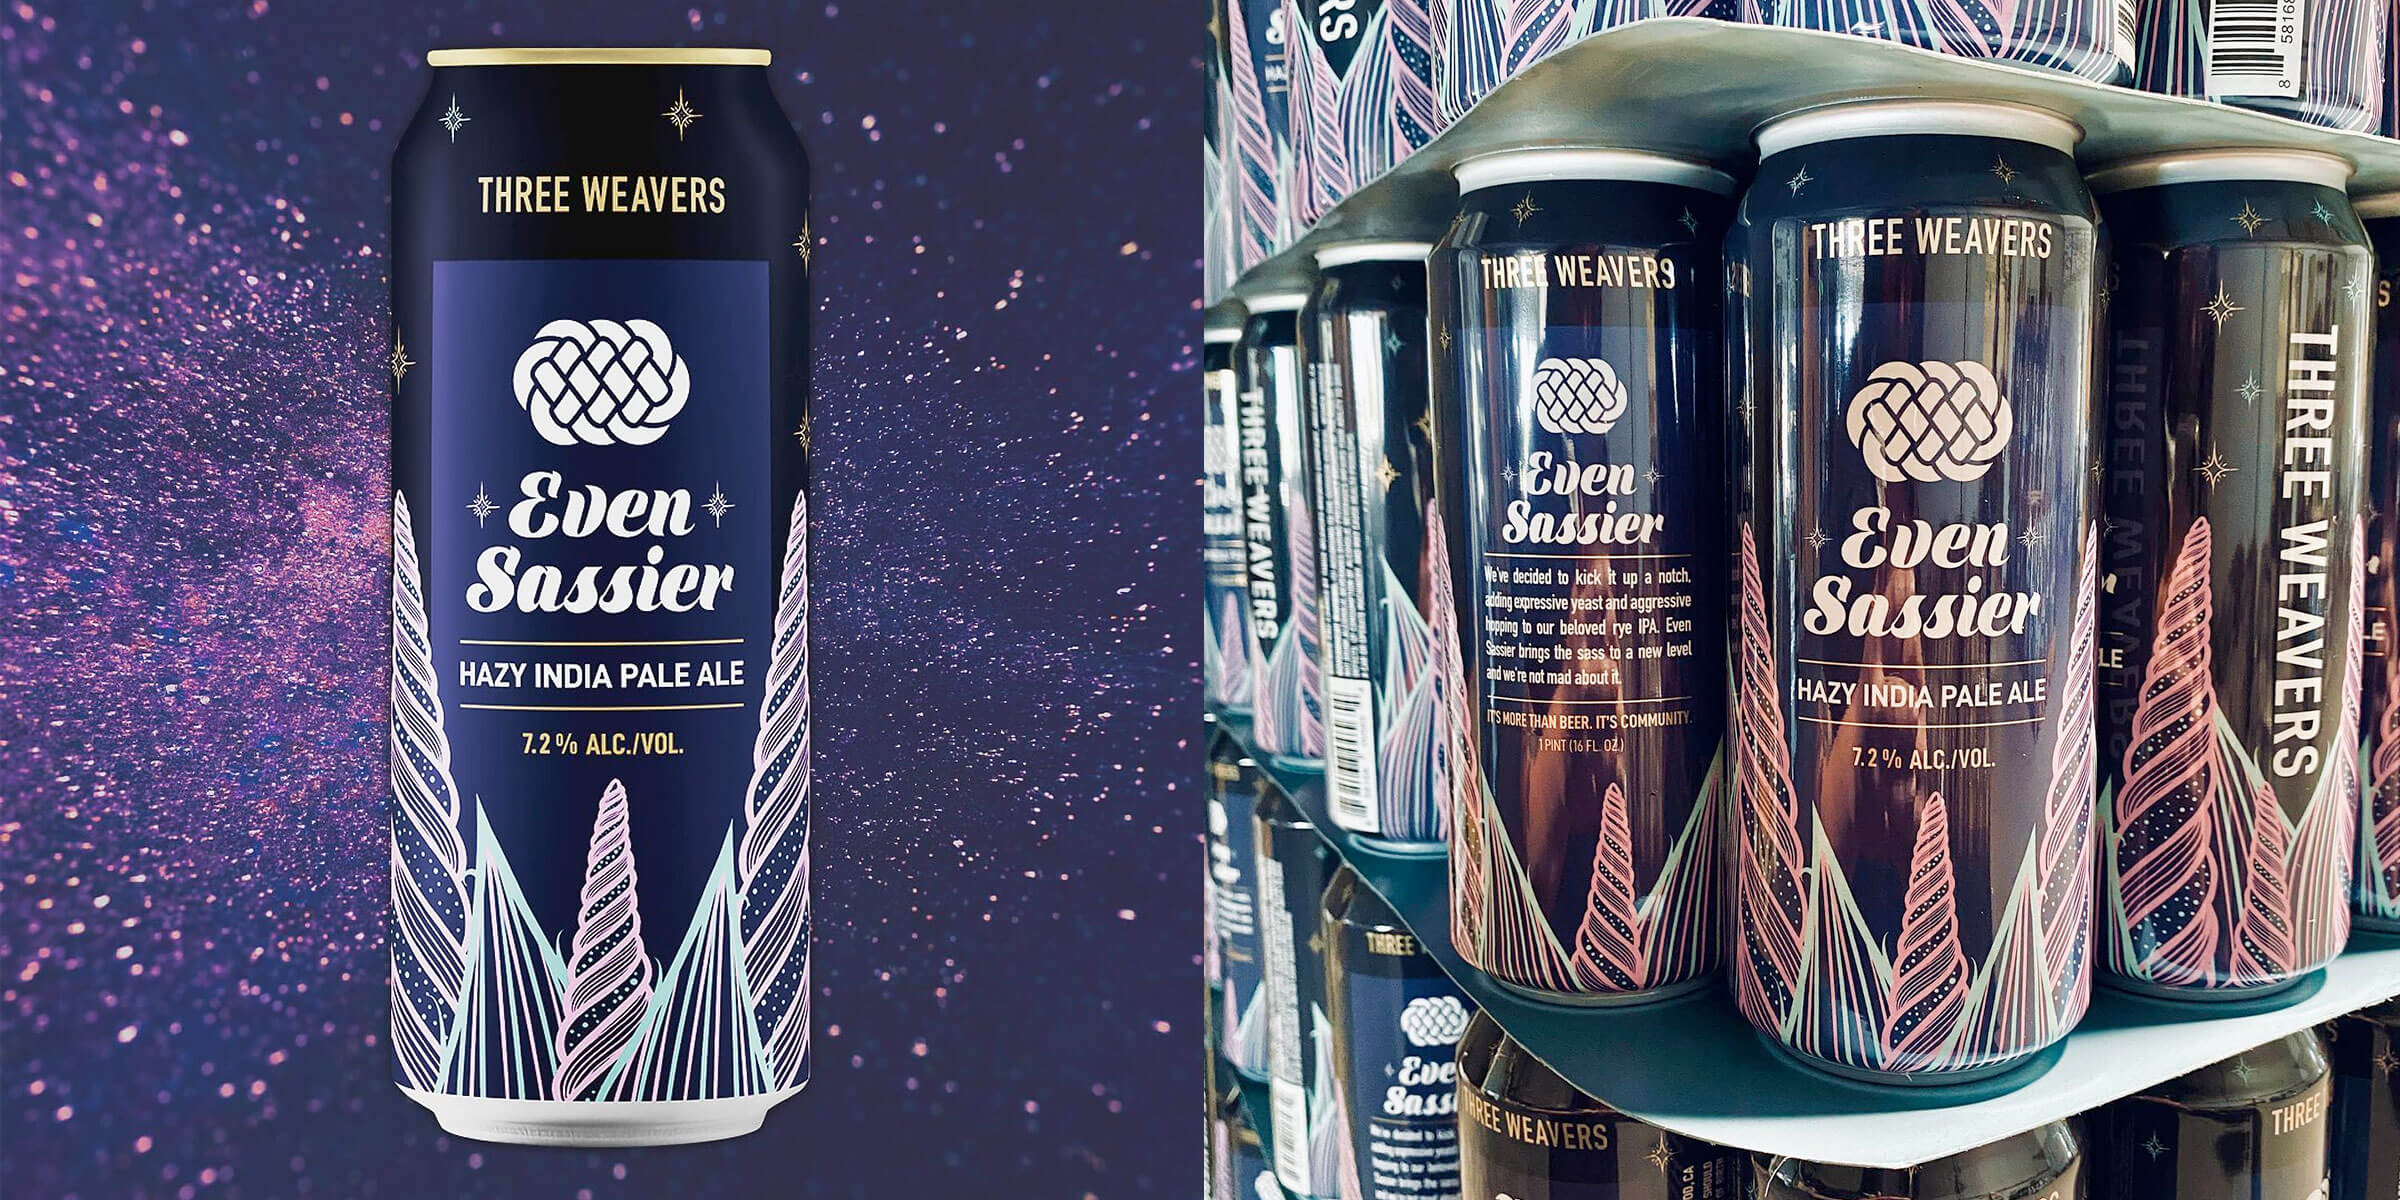 Three Weavers Brewing Company announced the reinvention of one of their favorite seasonal beers: Return of Sassy has become Even Sassier in 2020.